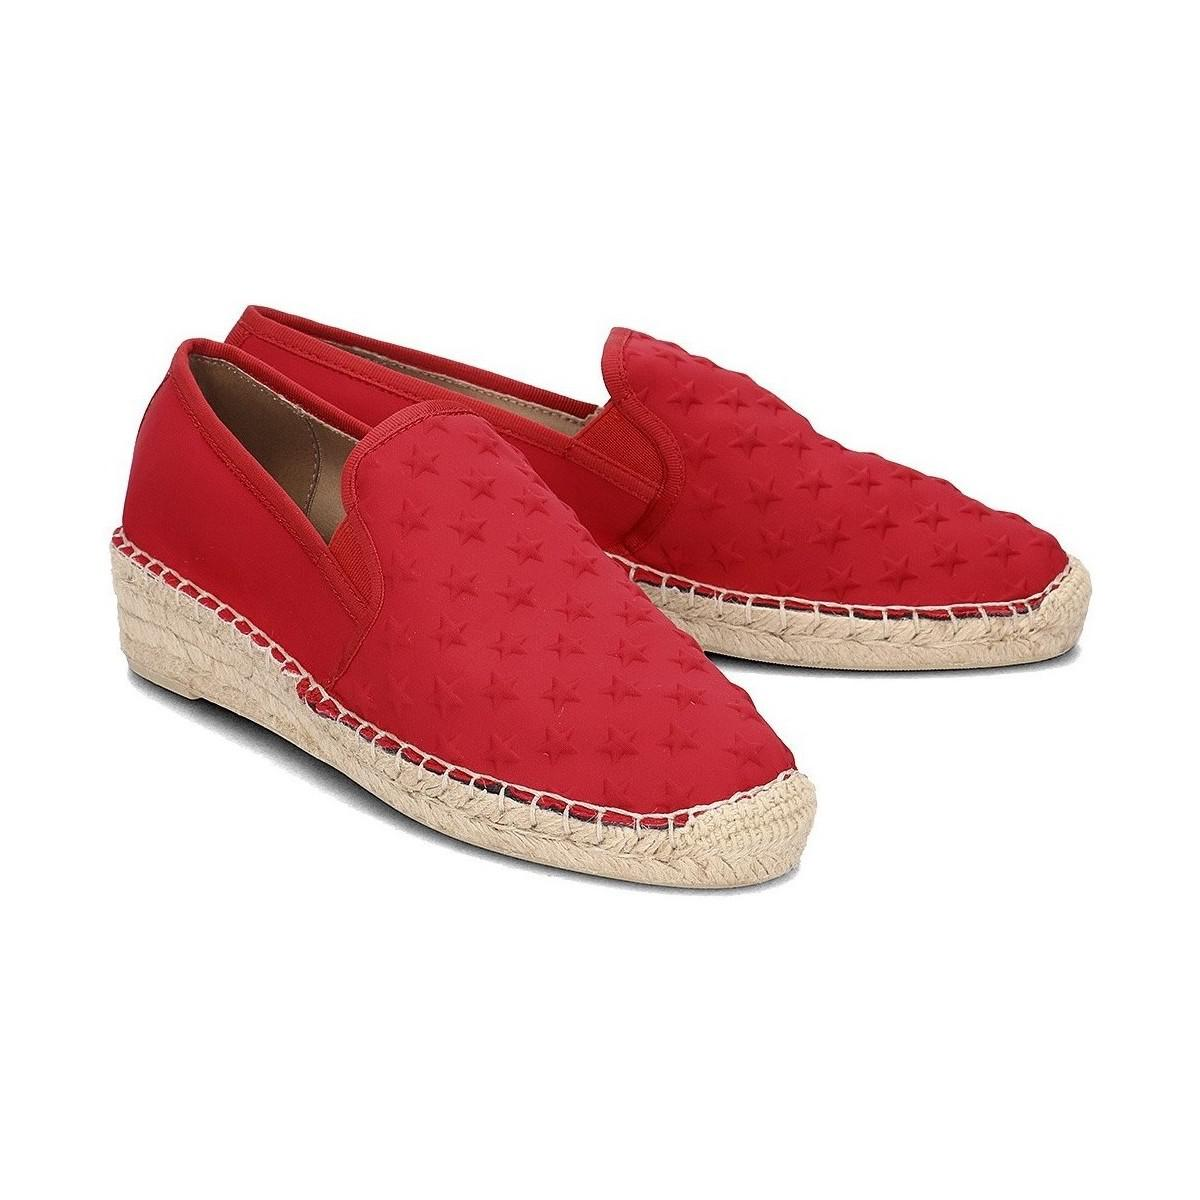 3c622ea97cb0 Tommy Hilfiger Fw0fw02263 Women s Espadrilles   Casual Shoes In Red ...